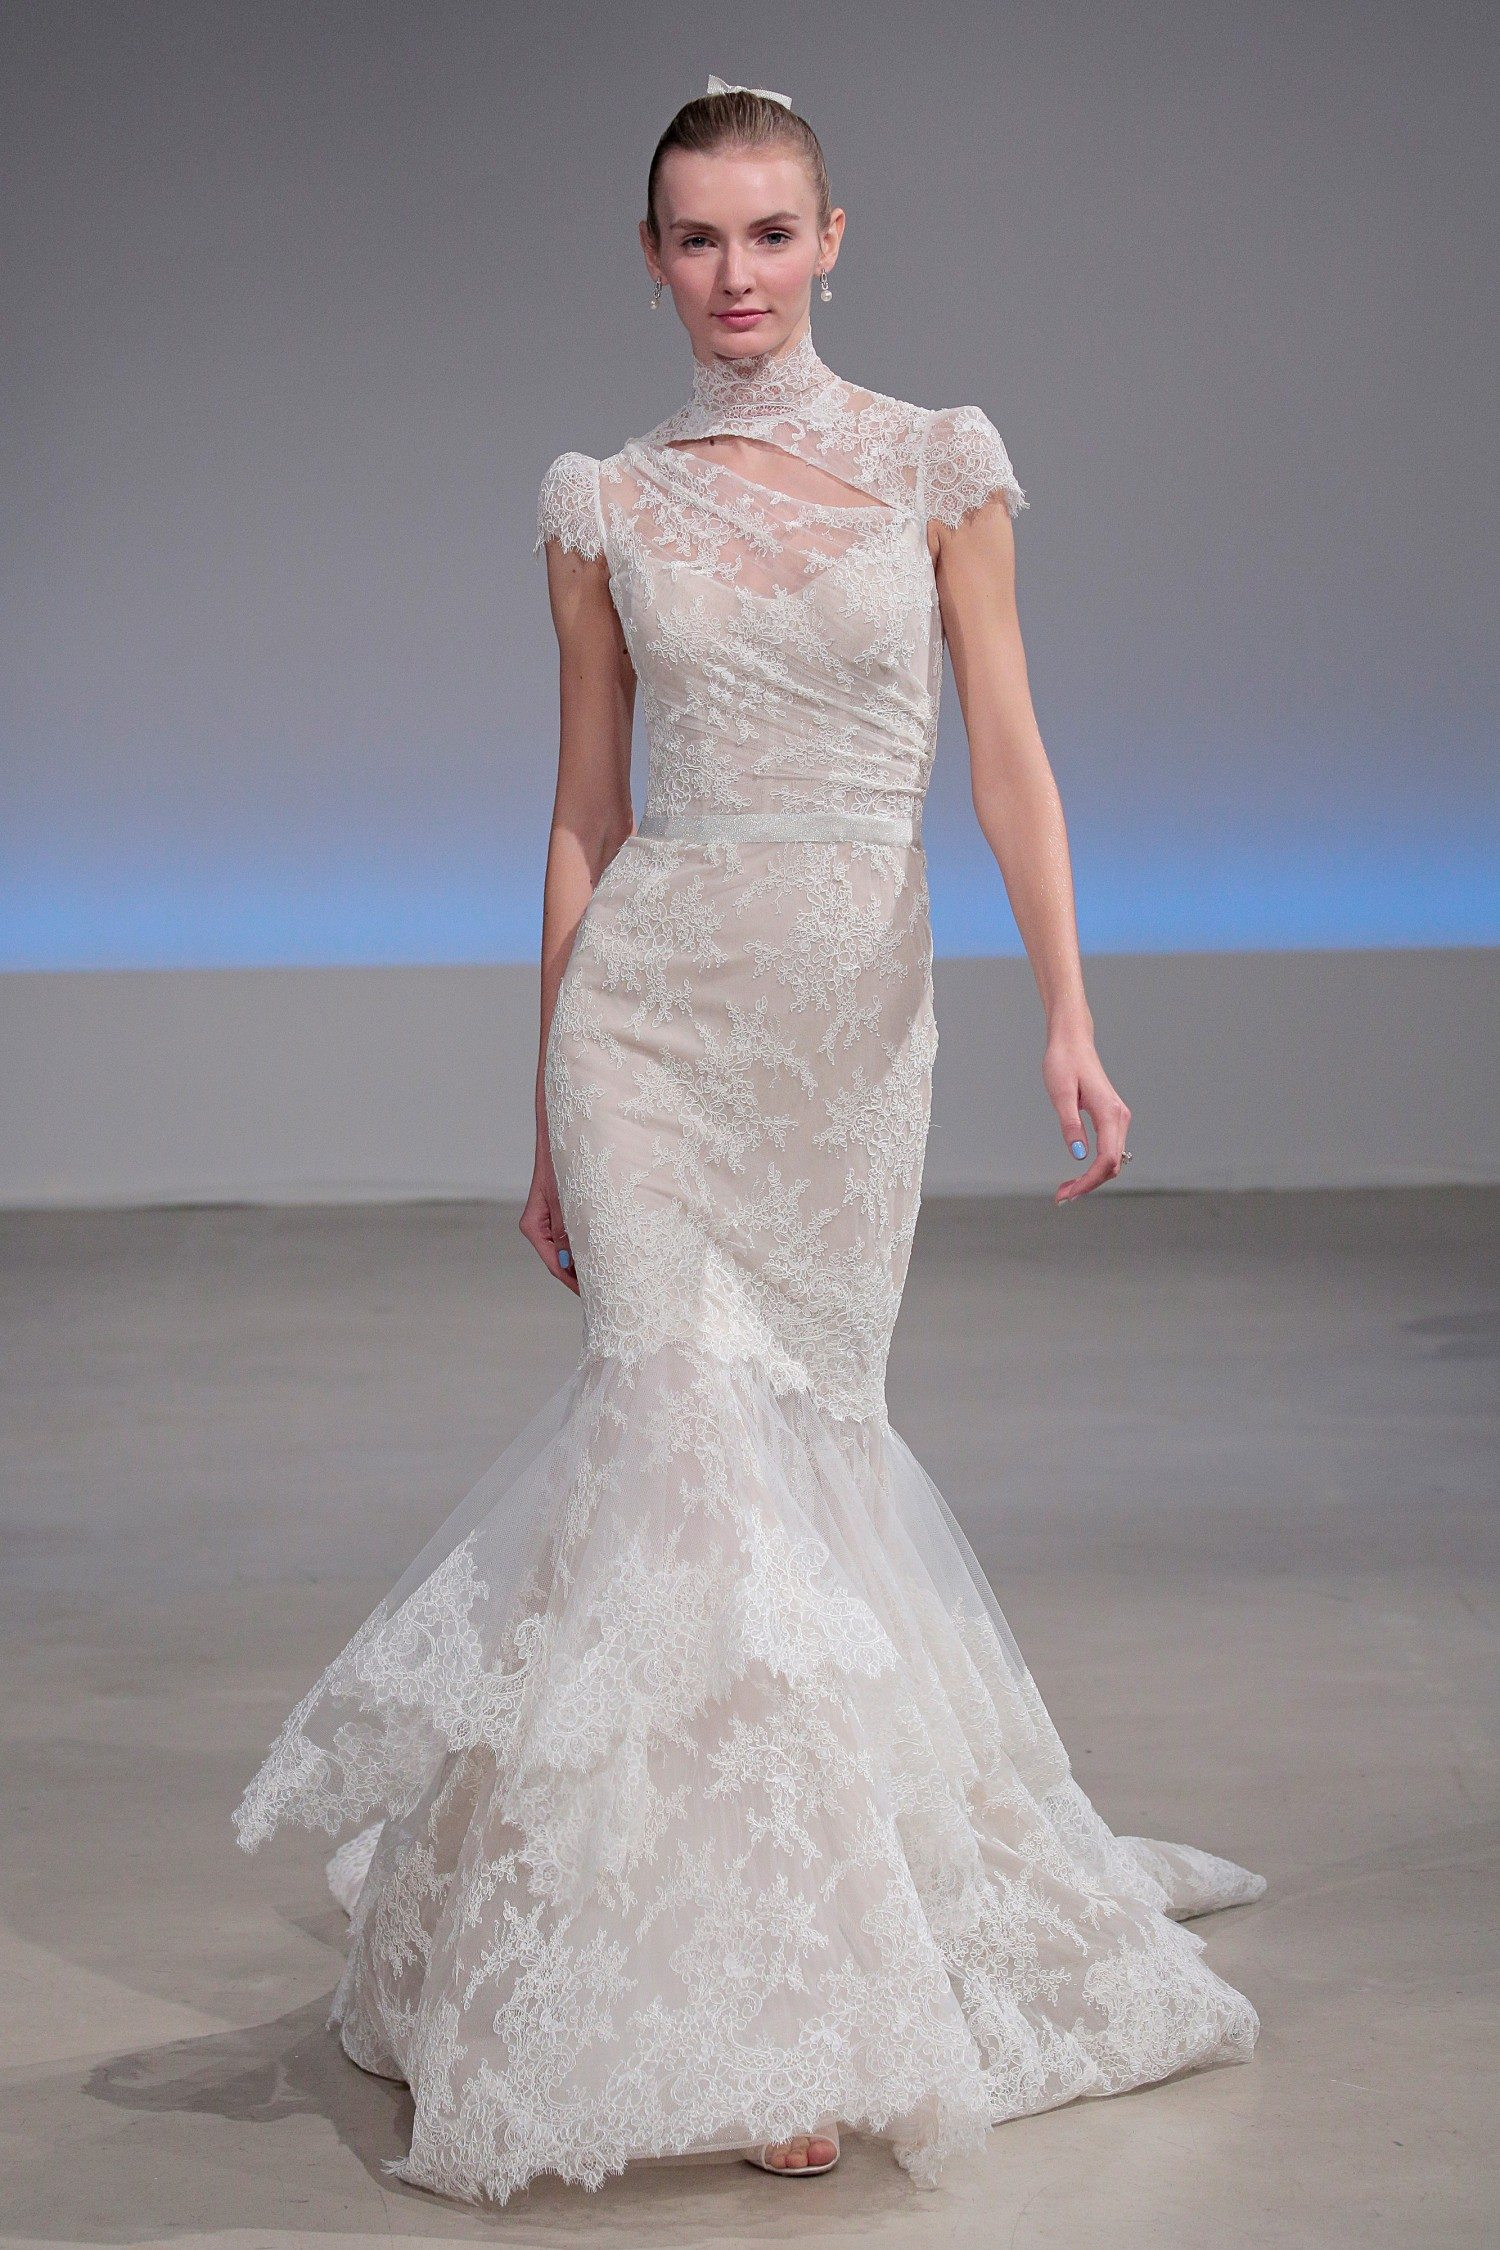 Isabelle Armstrong Design. Photo: Courtesy of Randy Brooke